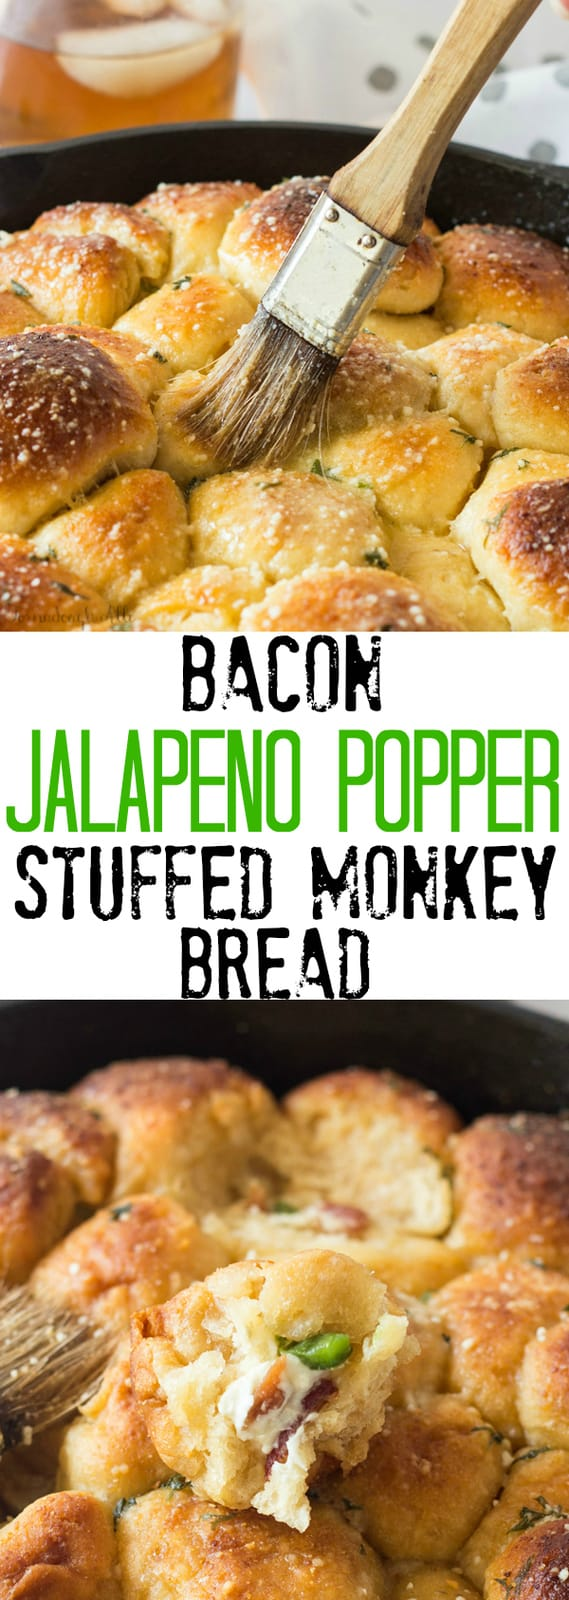 Bacon Jalapeno Popper Stuffed Monkey Bread